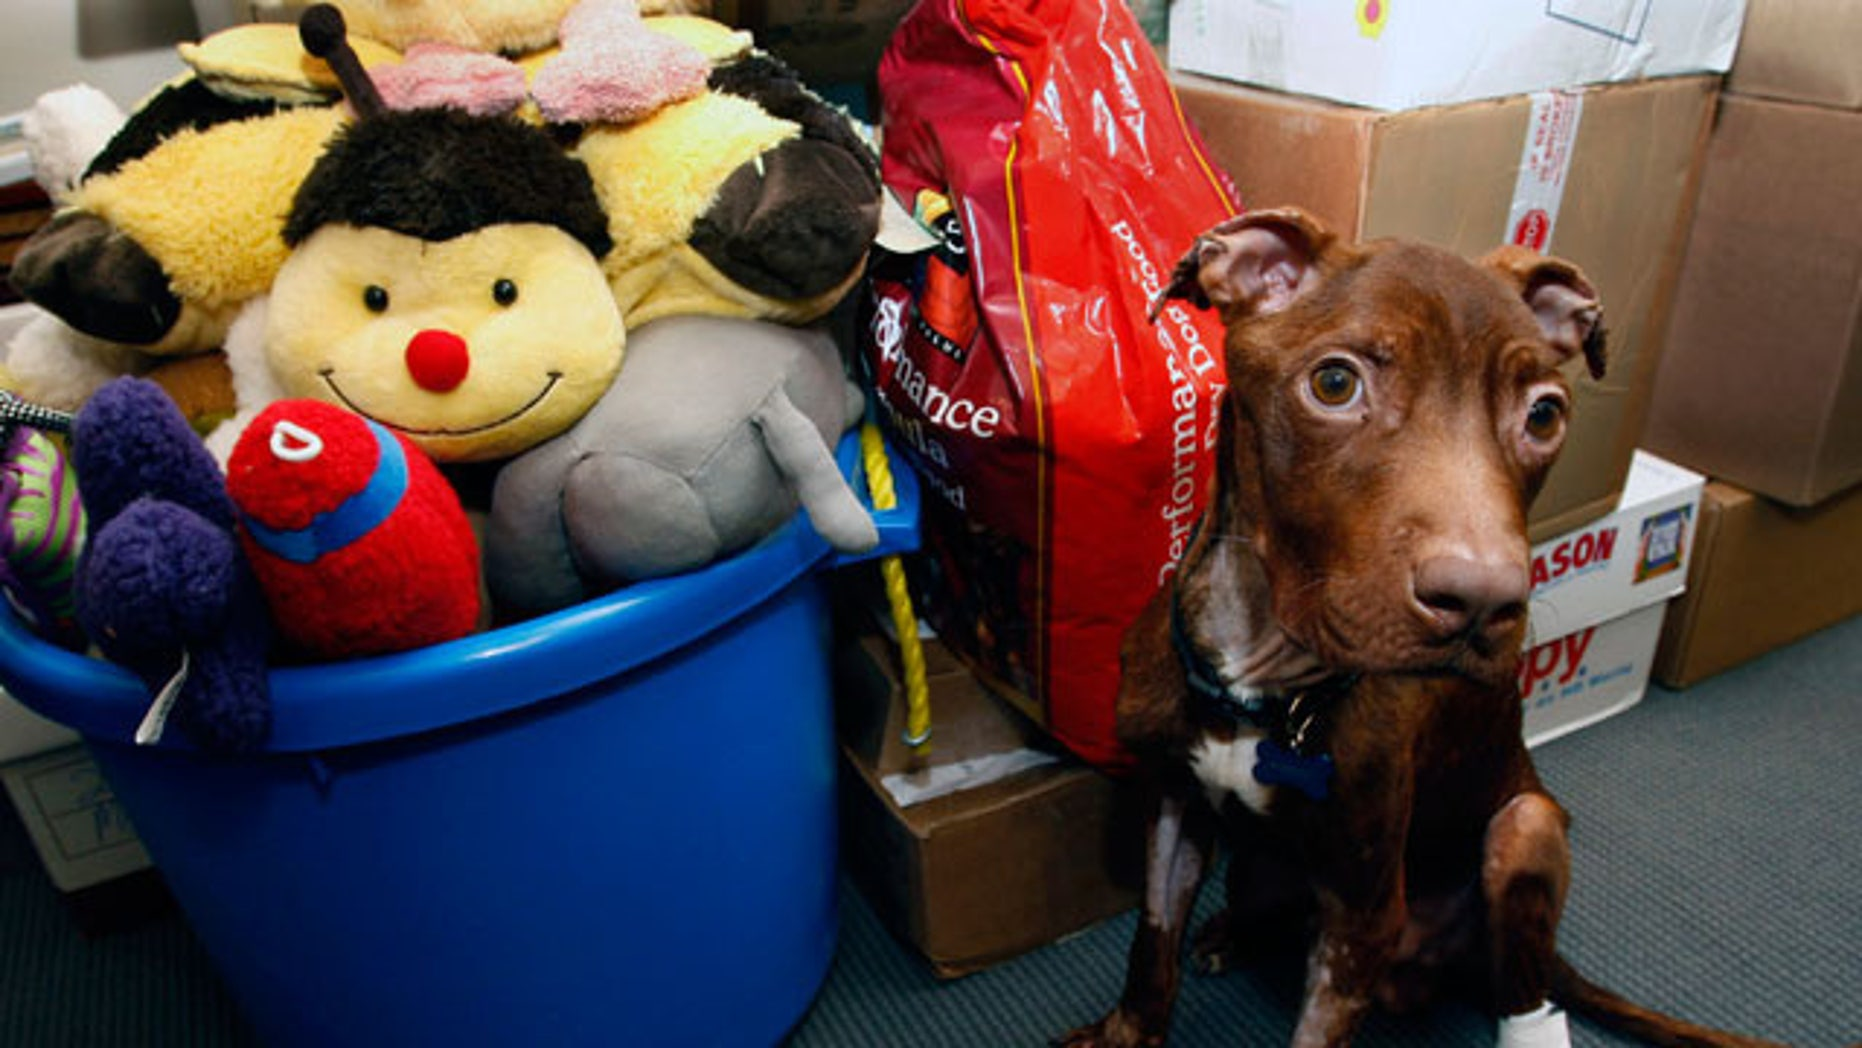 April 5: A 1-year-old pit bull nicknamed Patrick sits near piles of gifts donated to him as he recovers at Garden State Veterinary Specialists in Tinton Falls, N.J.